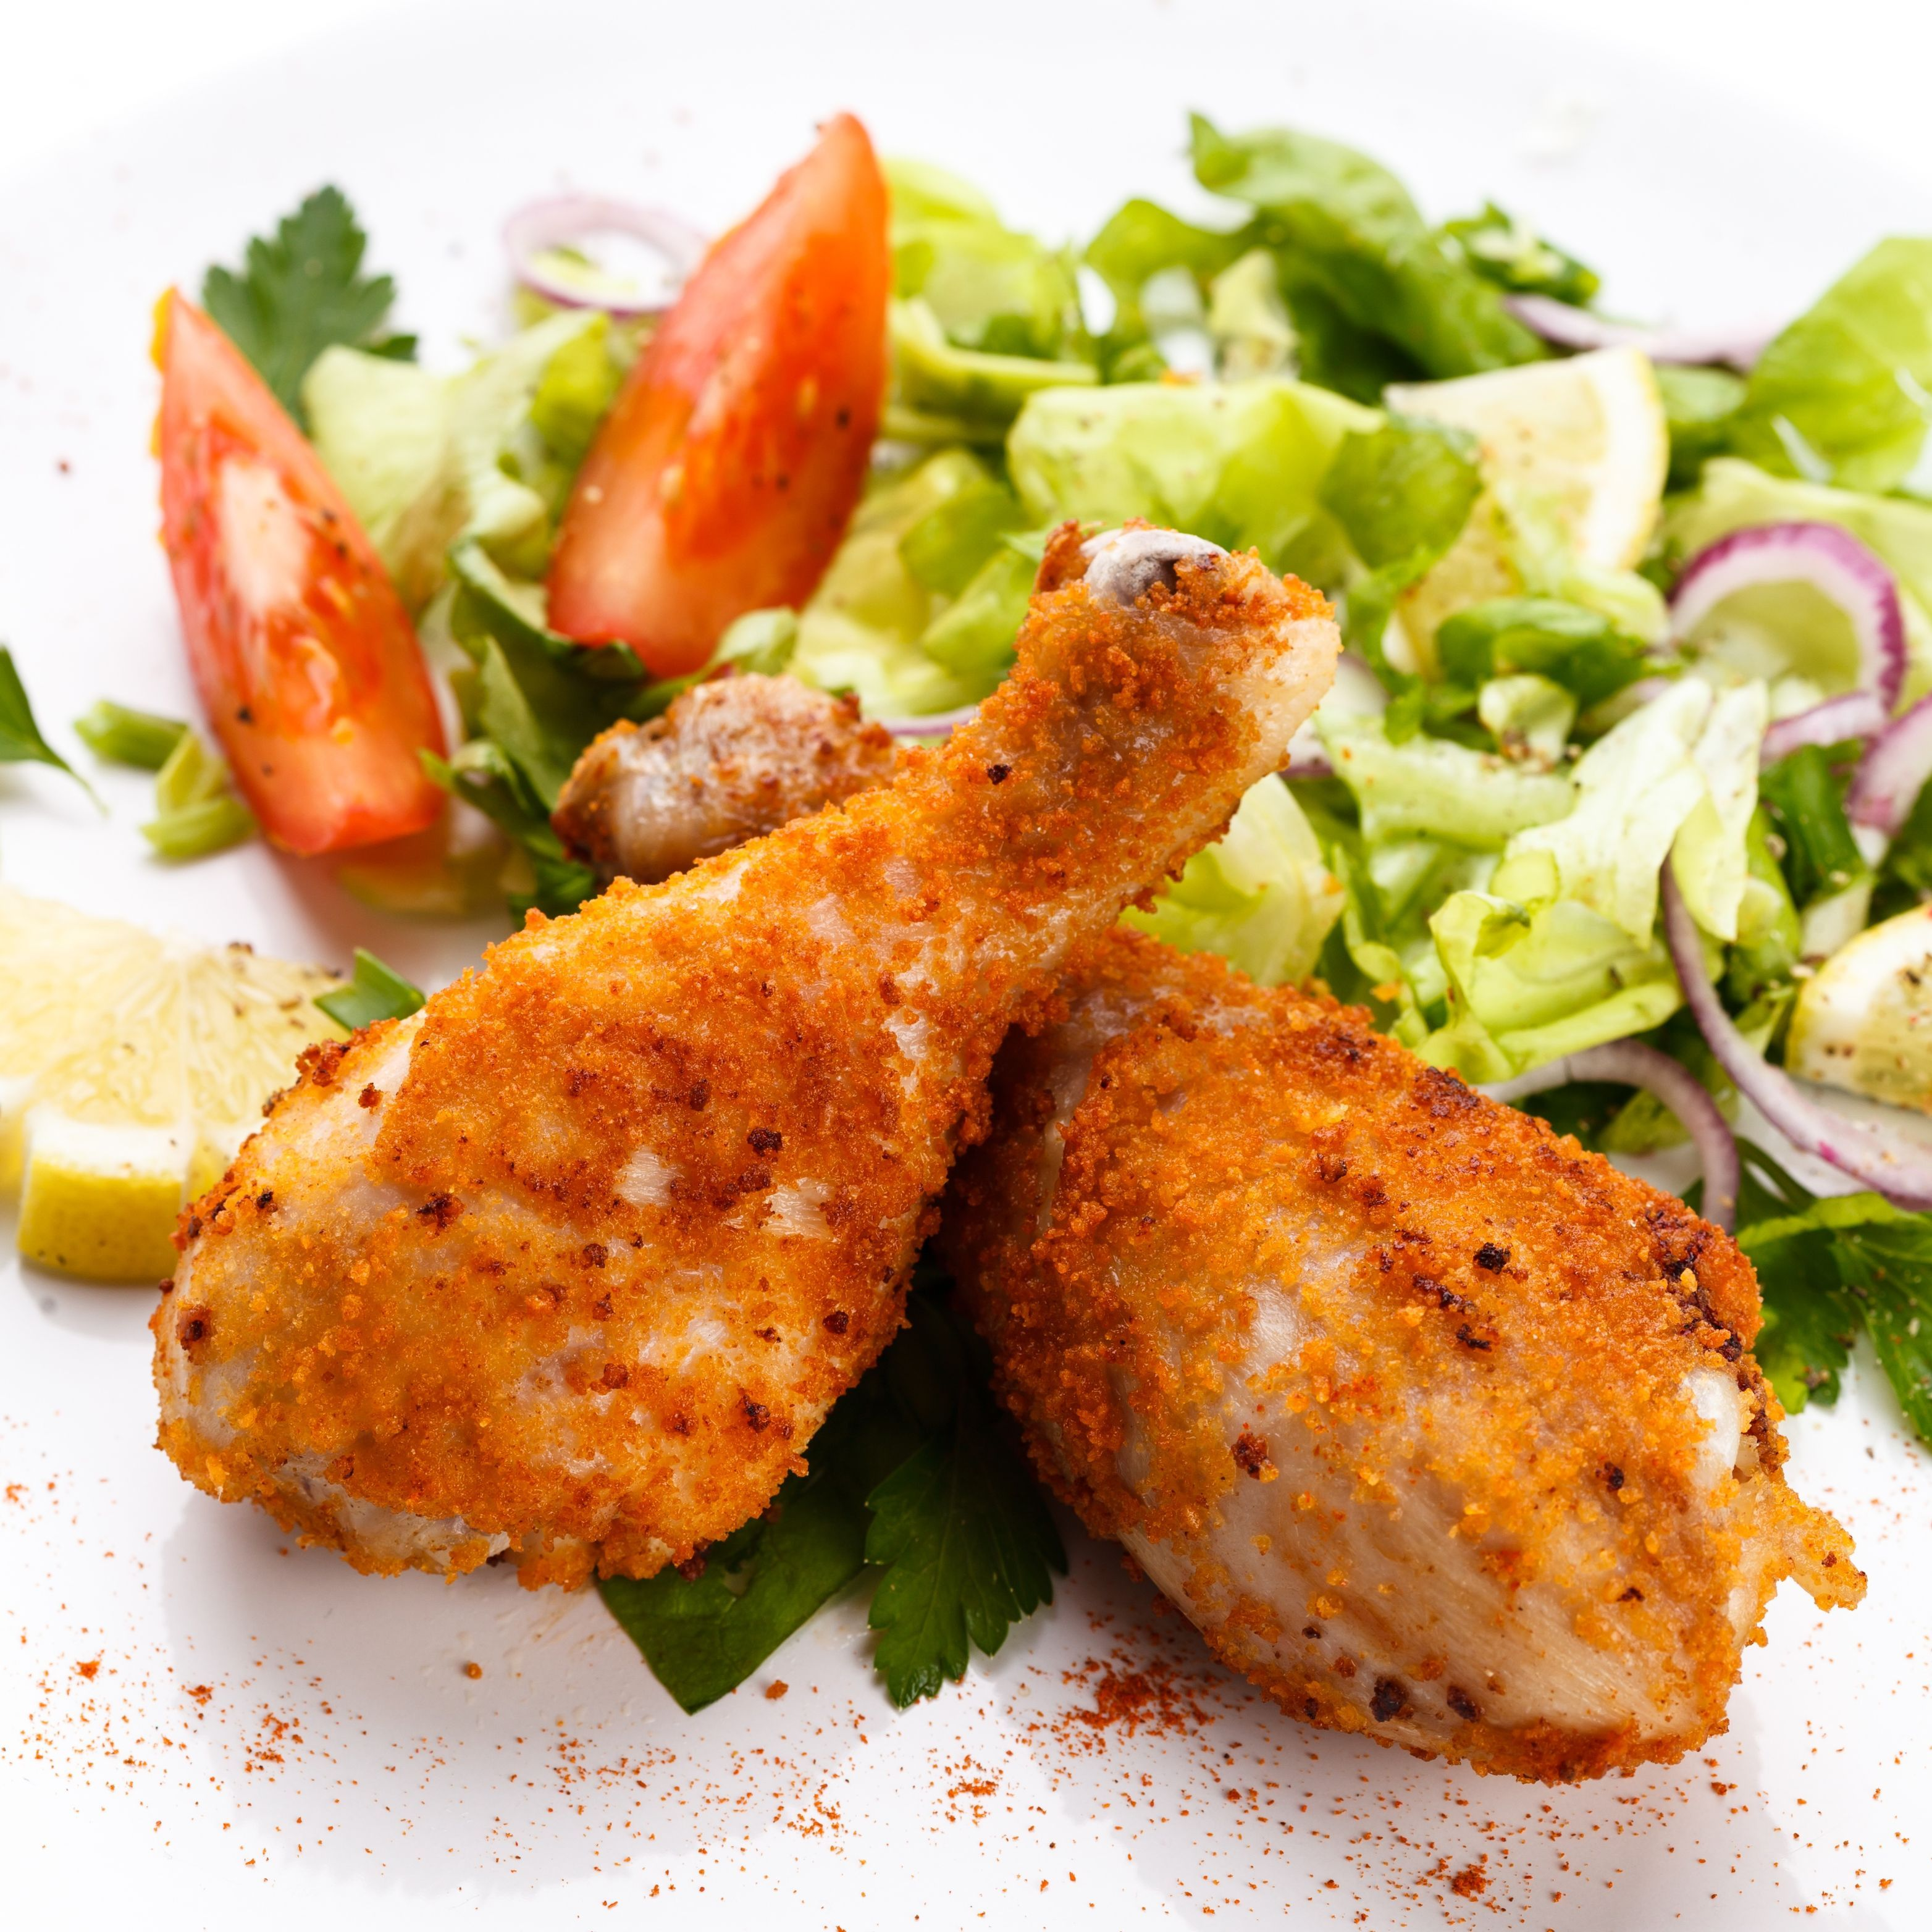 Breaded Amp Baked Chicken Drumsticks I Ll Use Panko Crumbs